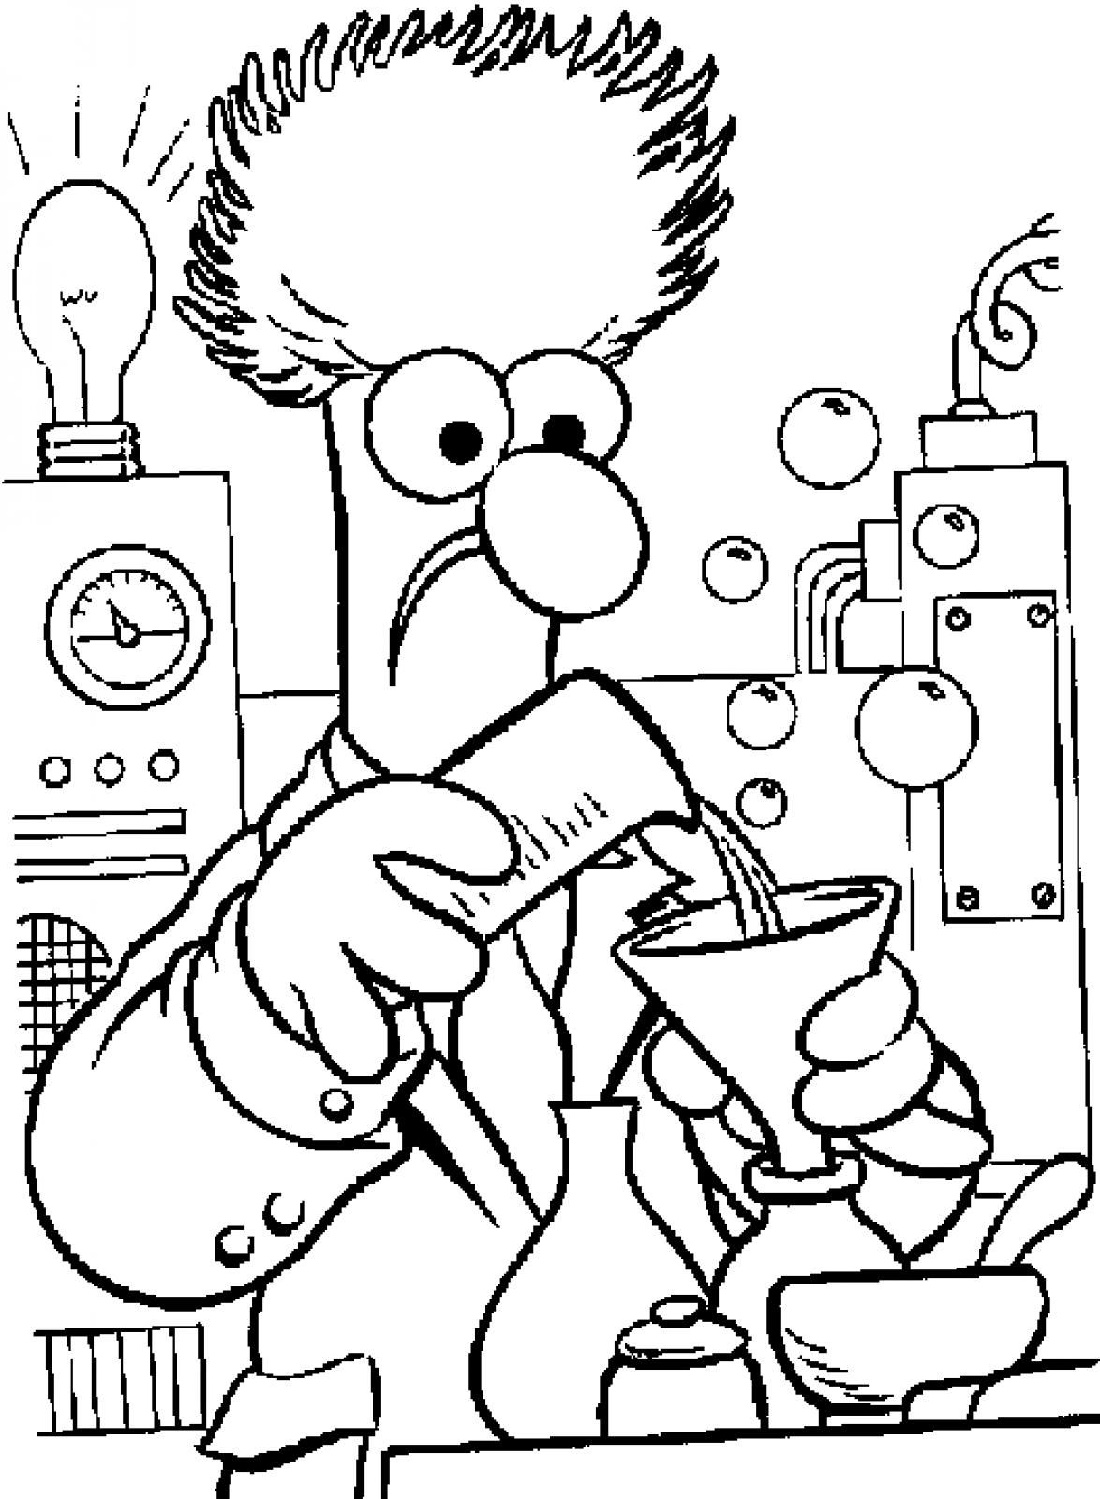 Chemistry Coloring Pages For Kids And Toddlers